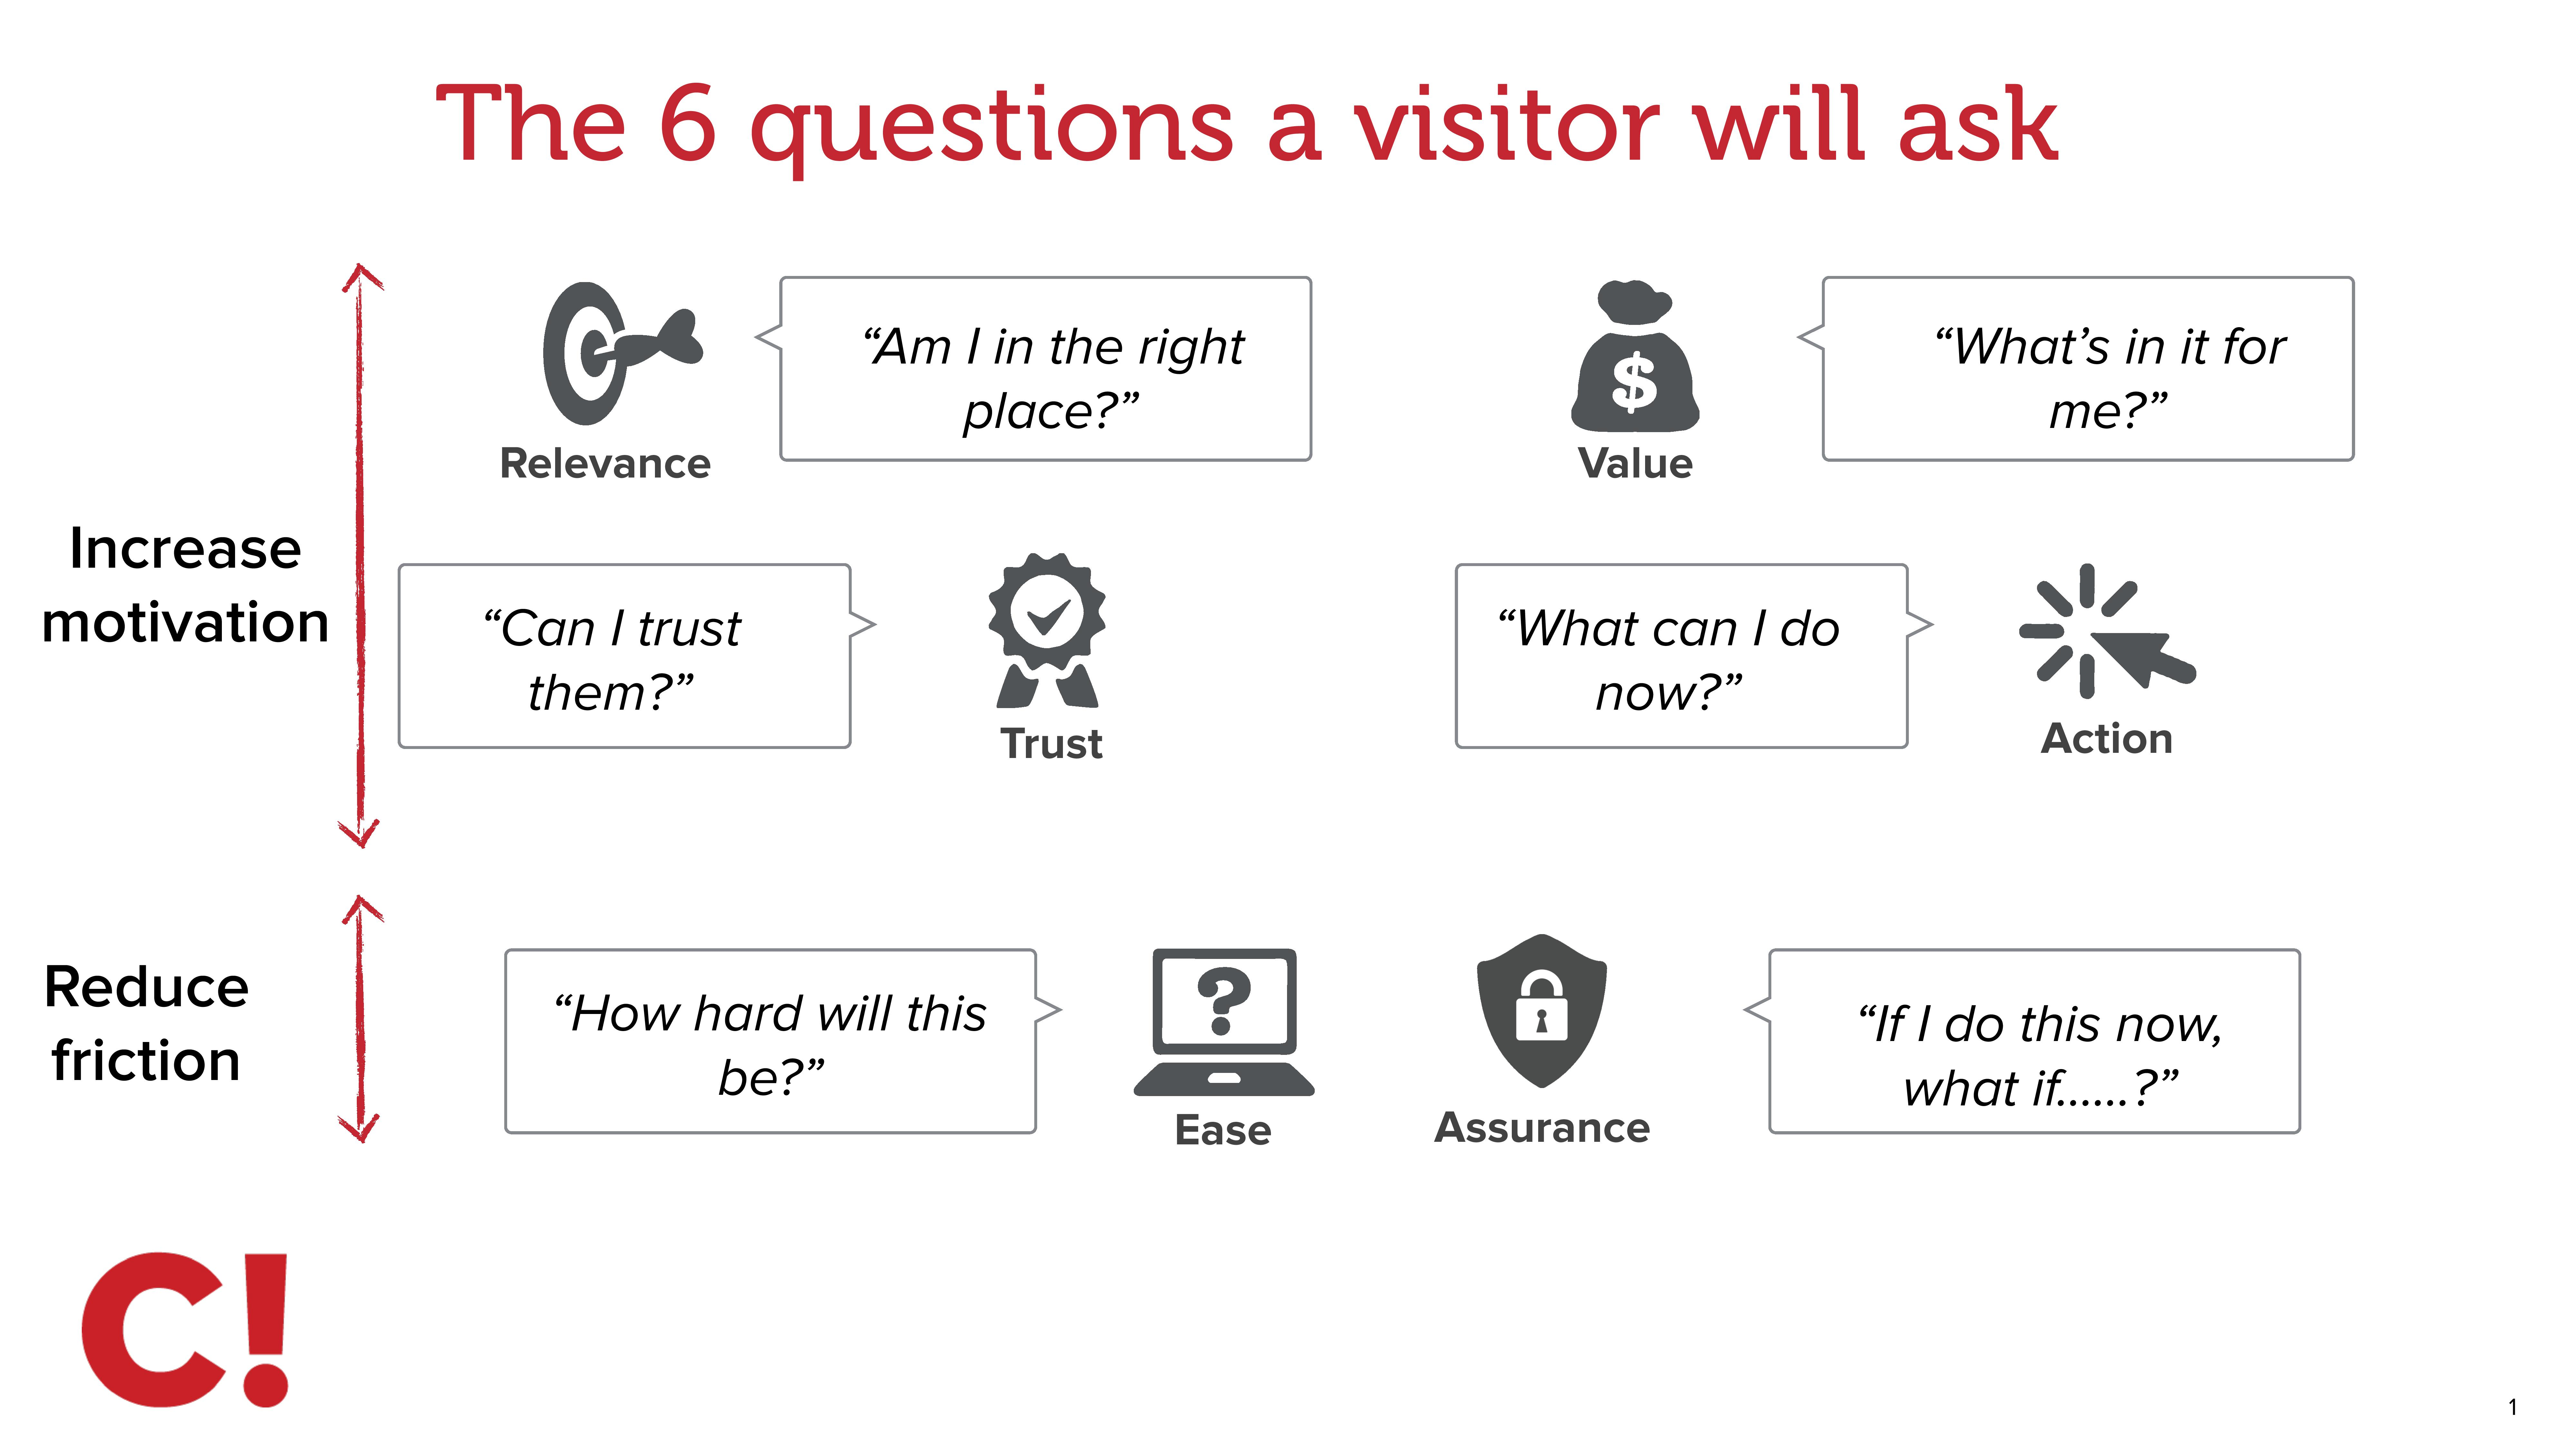 The 6 questions a visitor asks